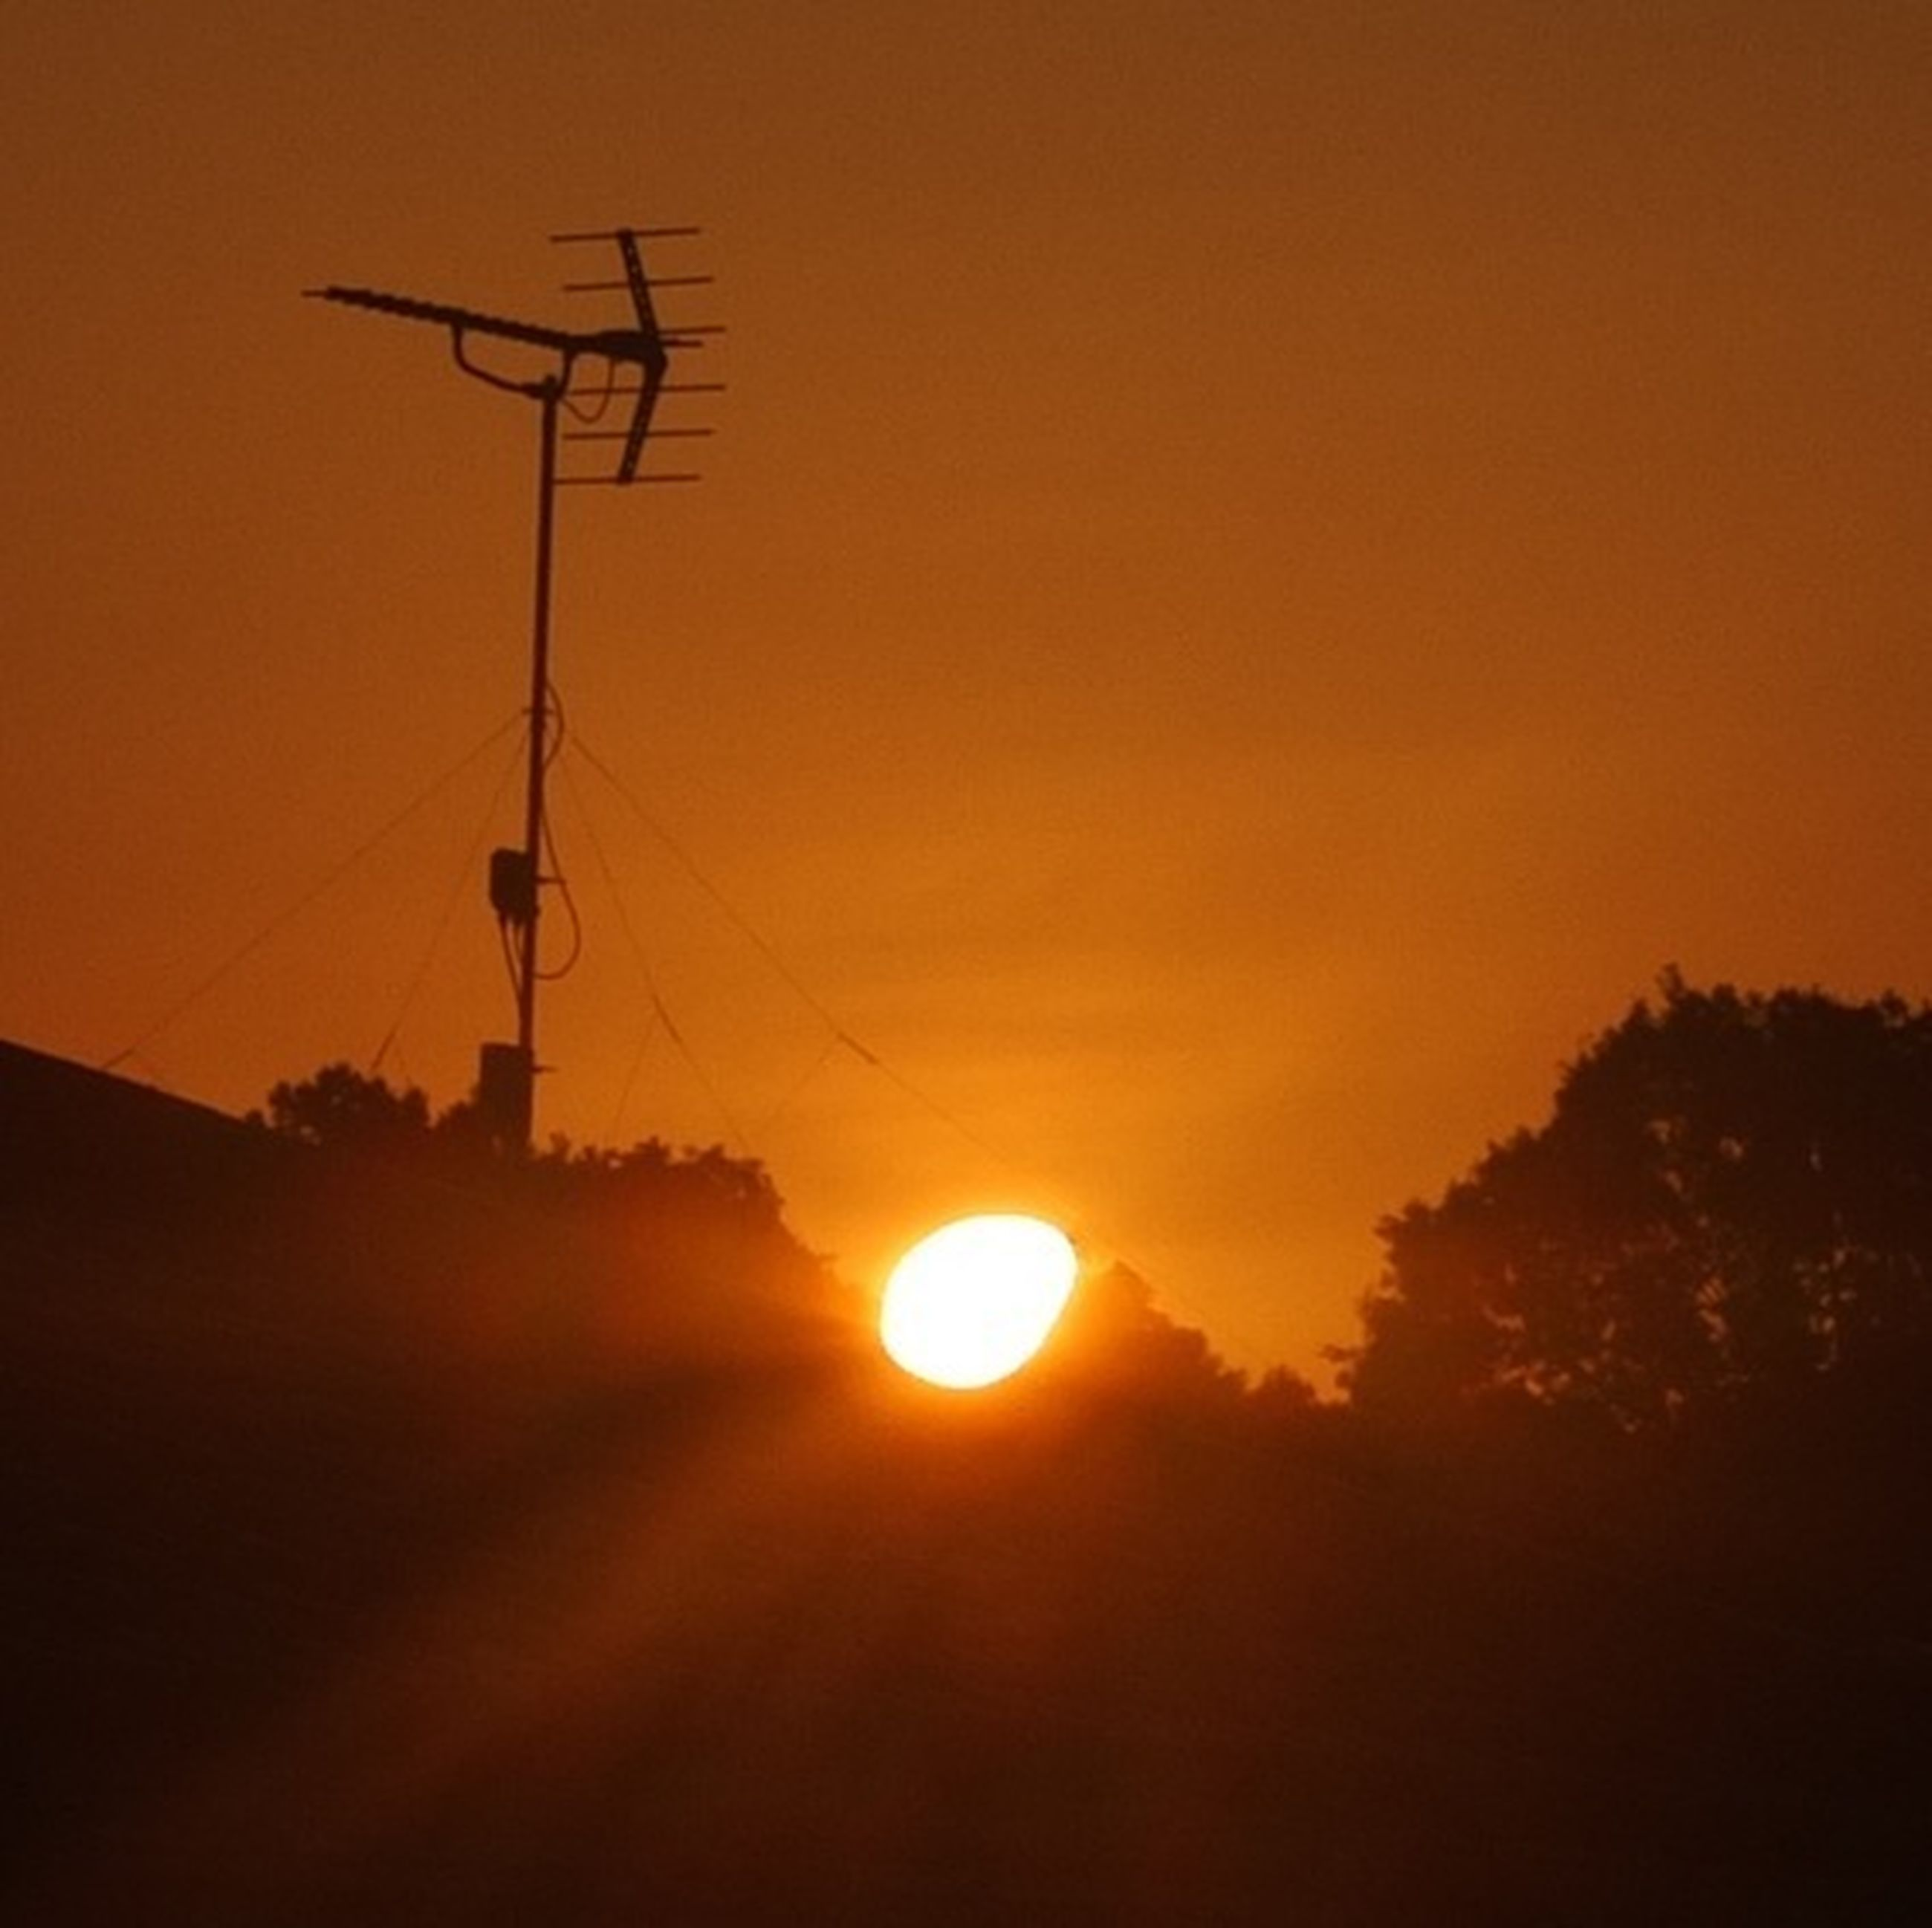 sunset, orange color, silhouette, sun, beauty in nature, scenics, tranquility, power line, sky, nature, tranquil scene, electricity pylon, tree, electricity, fuel and power generation, idyllic, landscape, connection, sunlight, low angle view